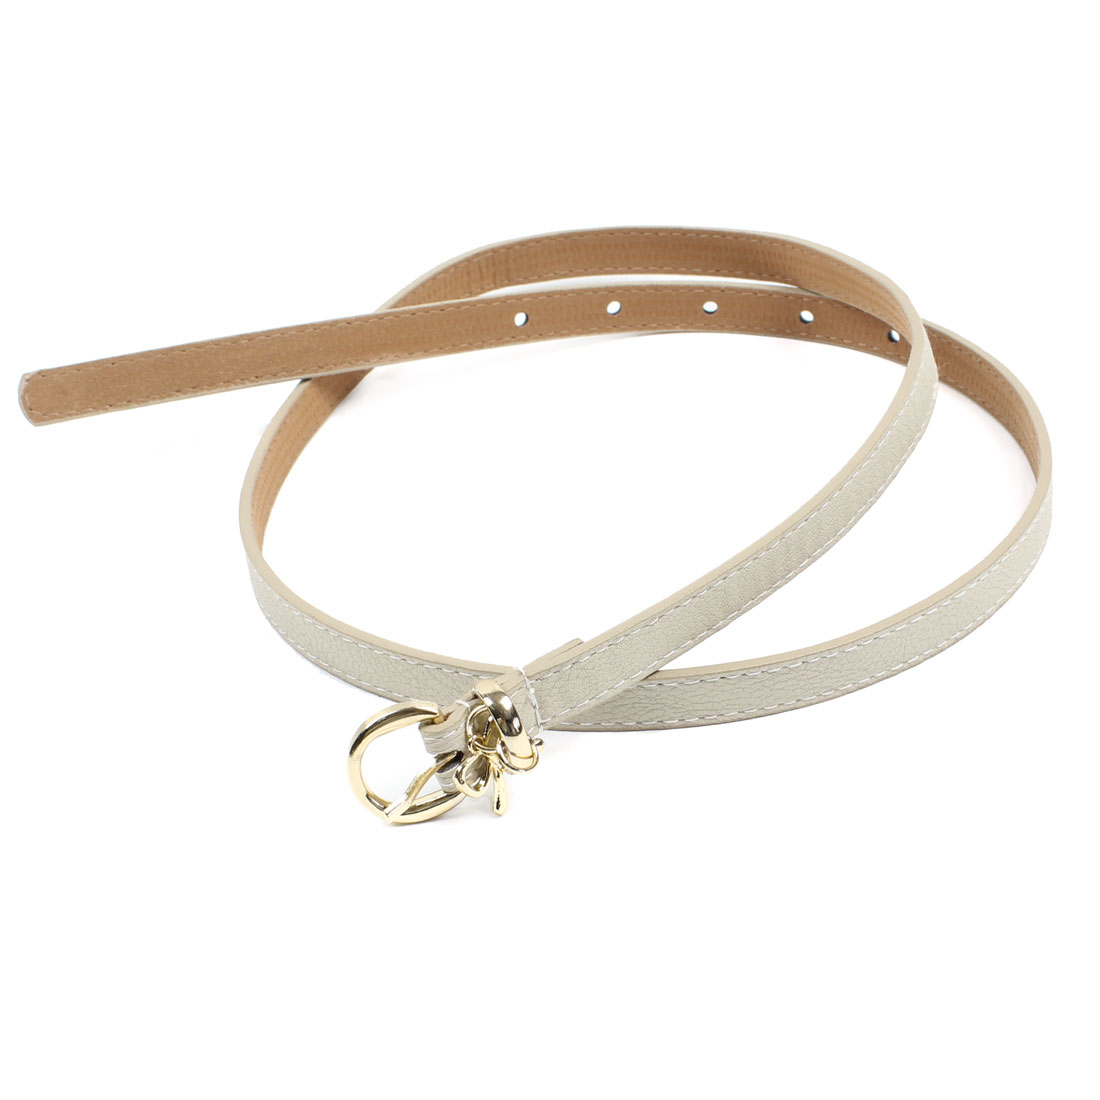 Single Pin Buckle Faux Leather Thin Adjustable Waist Belt Beige for Women